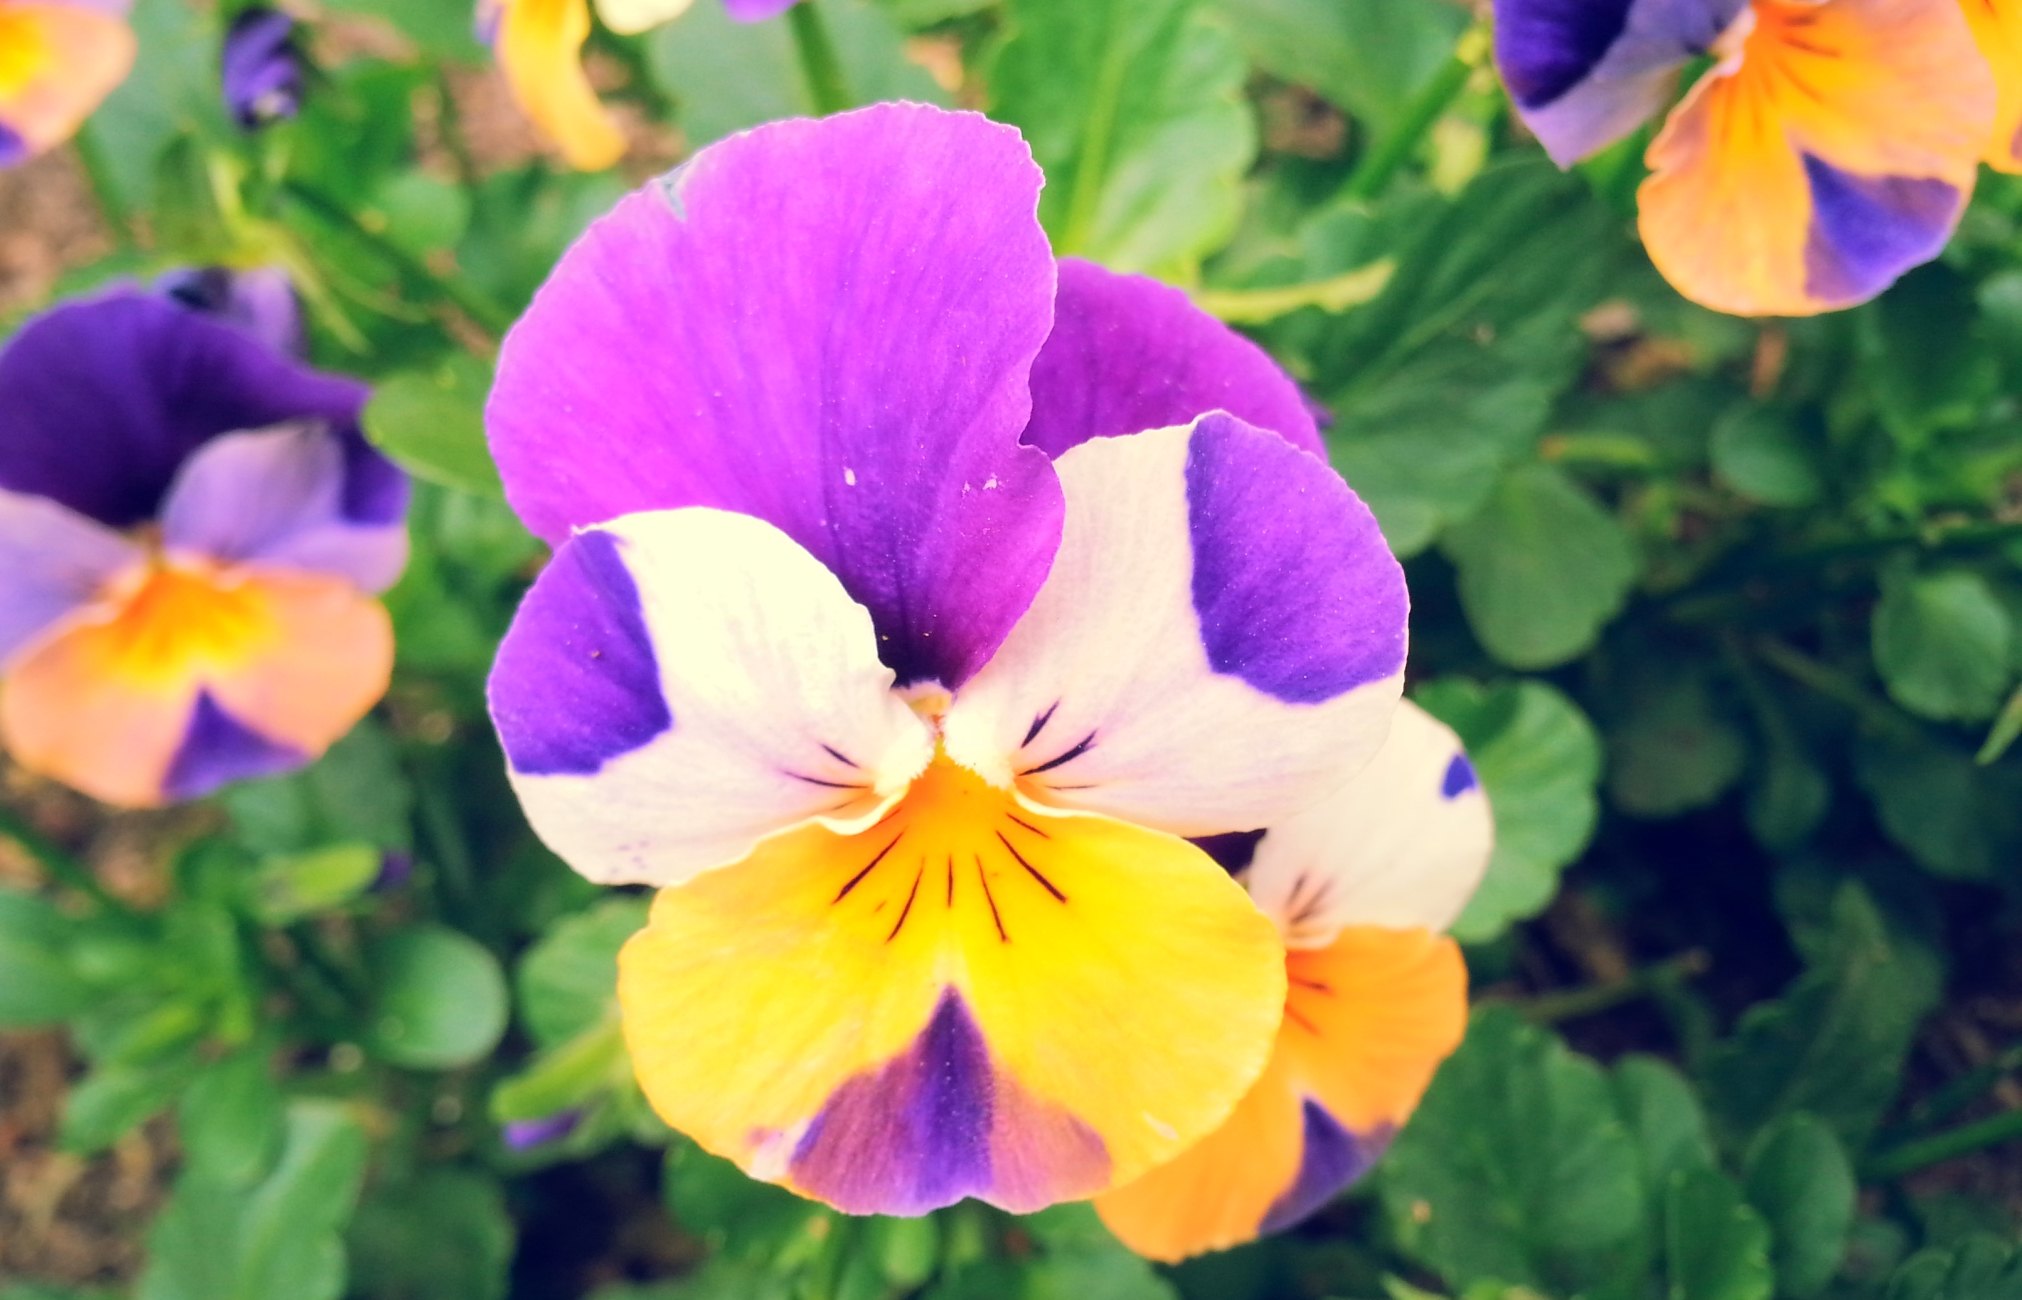 One Life pansy